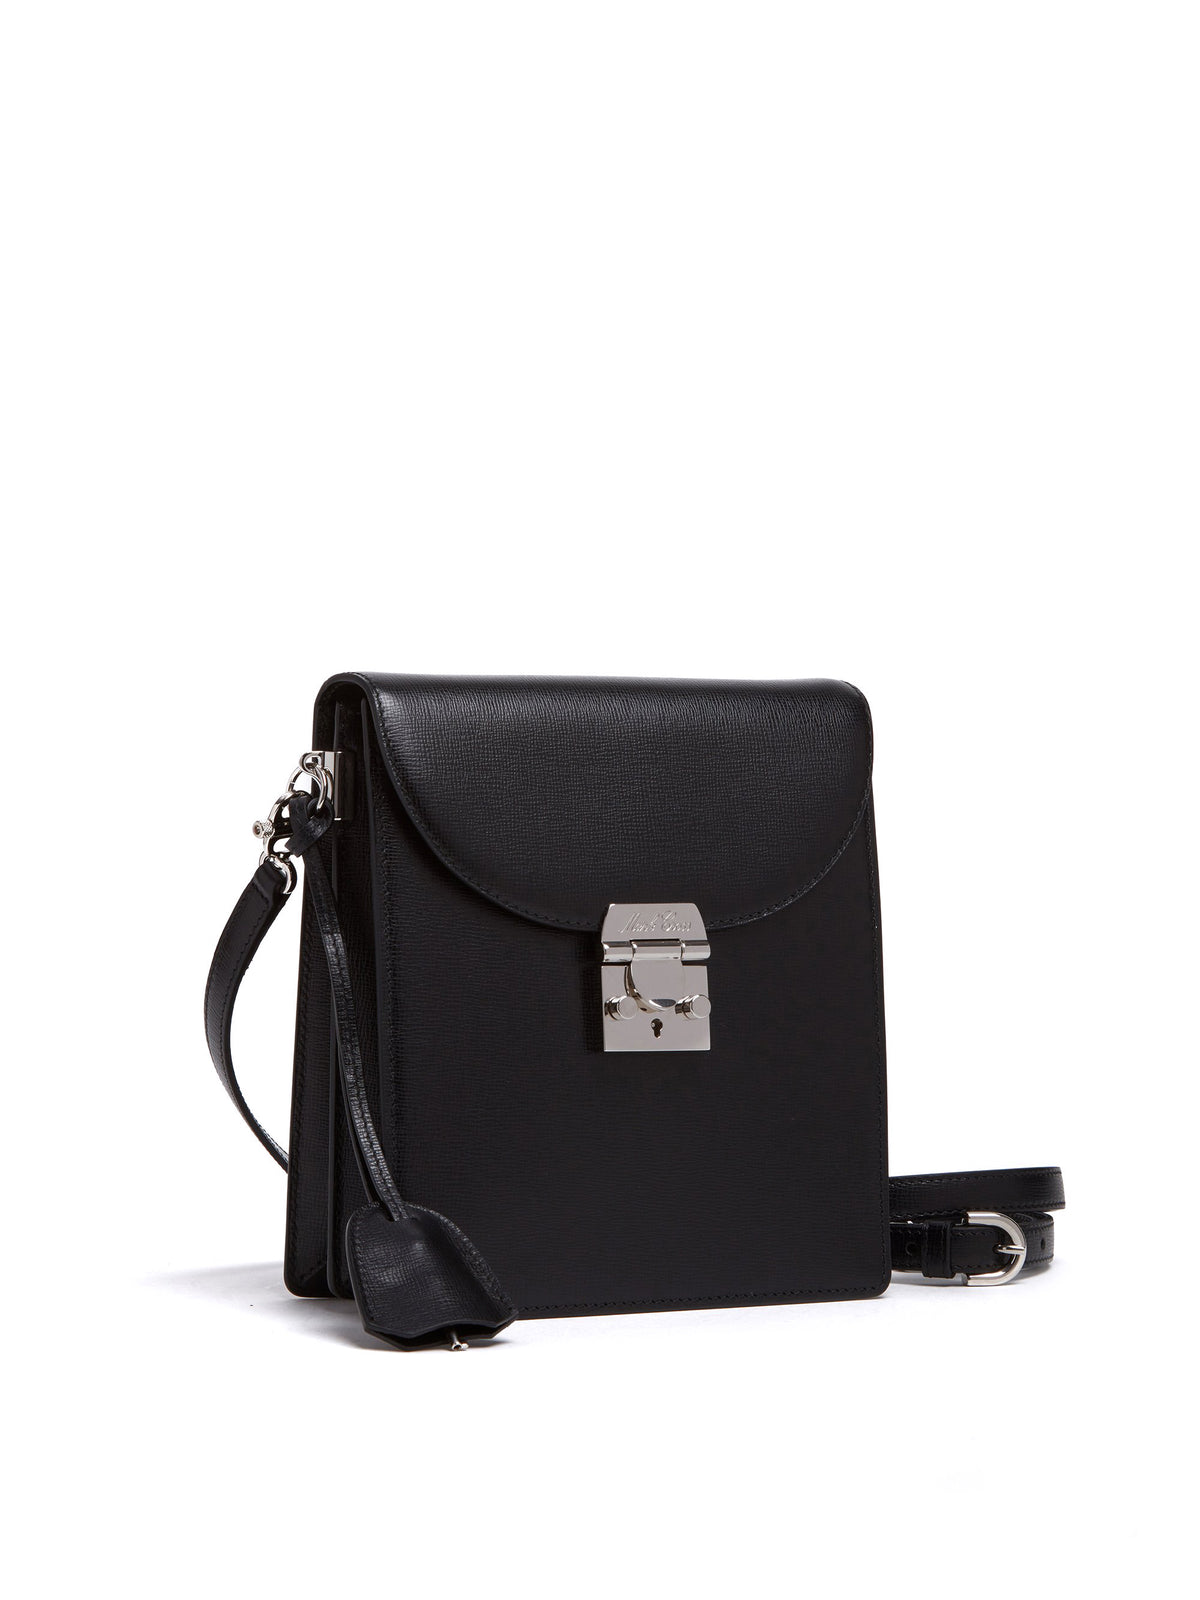 Mark Cross Patrick Leather Crossbody Bag Mini Franzi Black Side